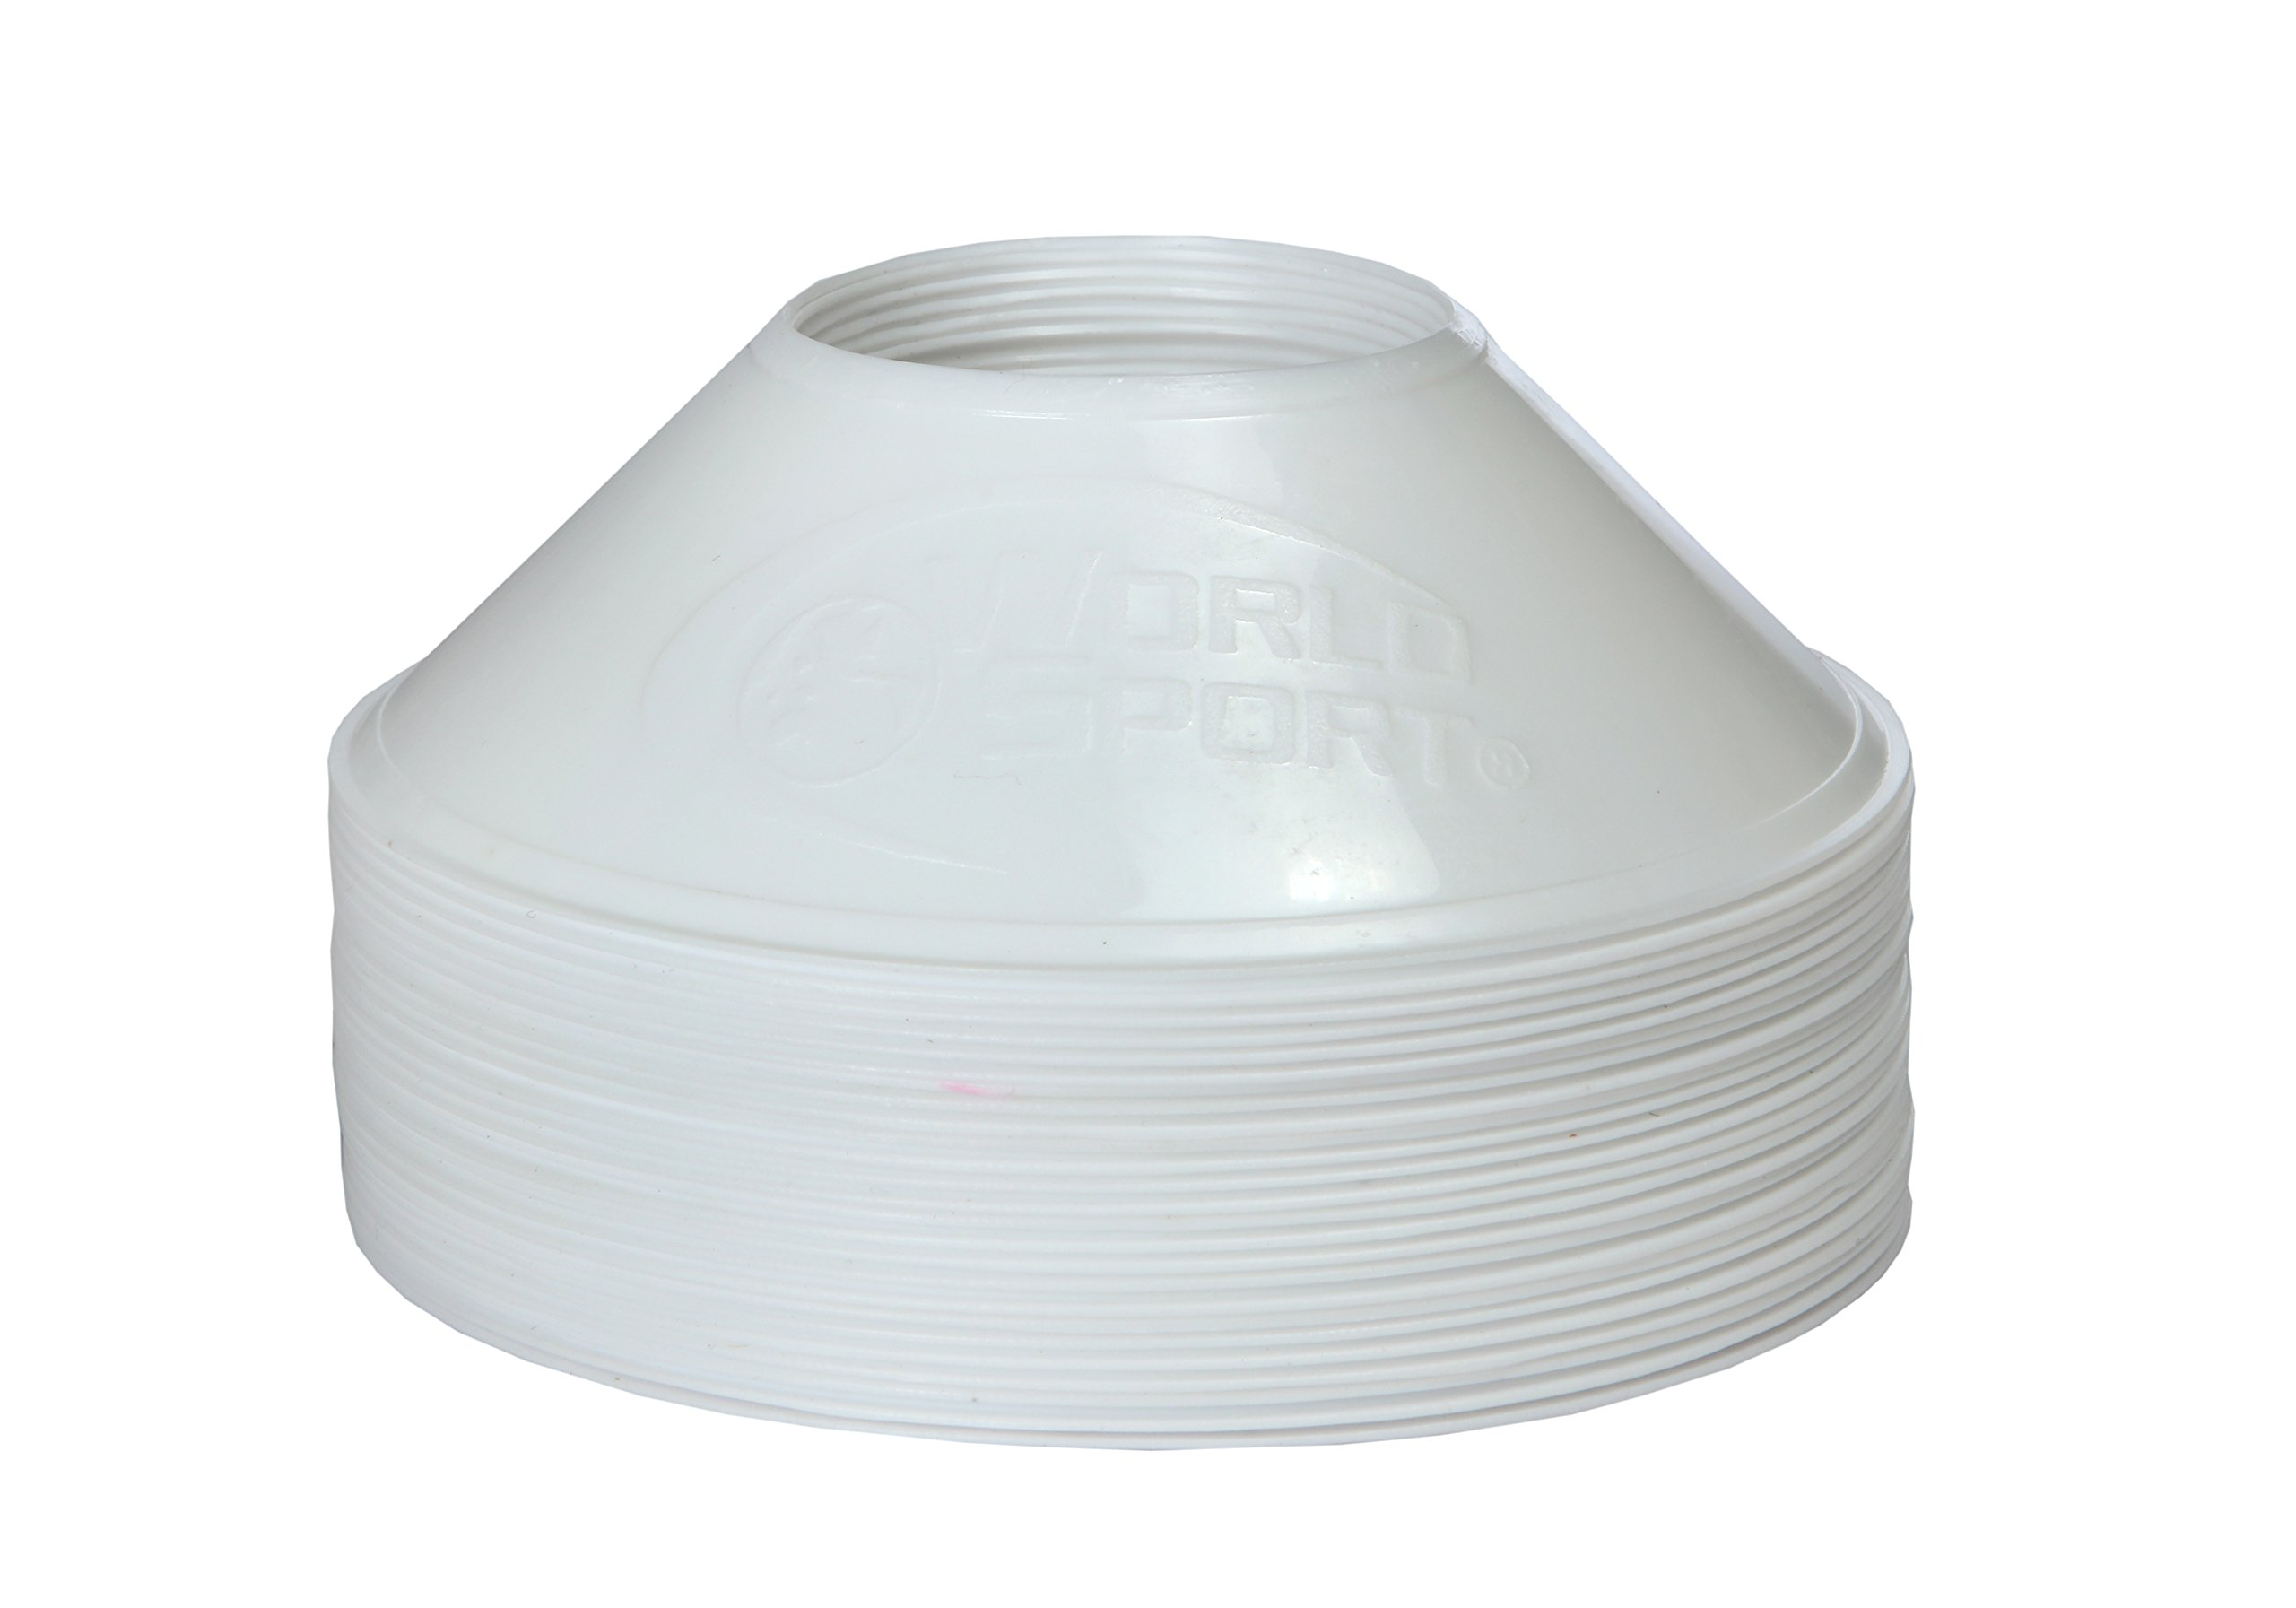 World Sport MINI Disc Cones 25 White / 25 Pink (50 Pack) by World Sport (Image #5)